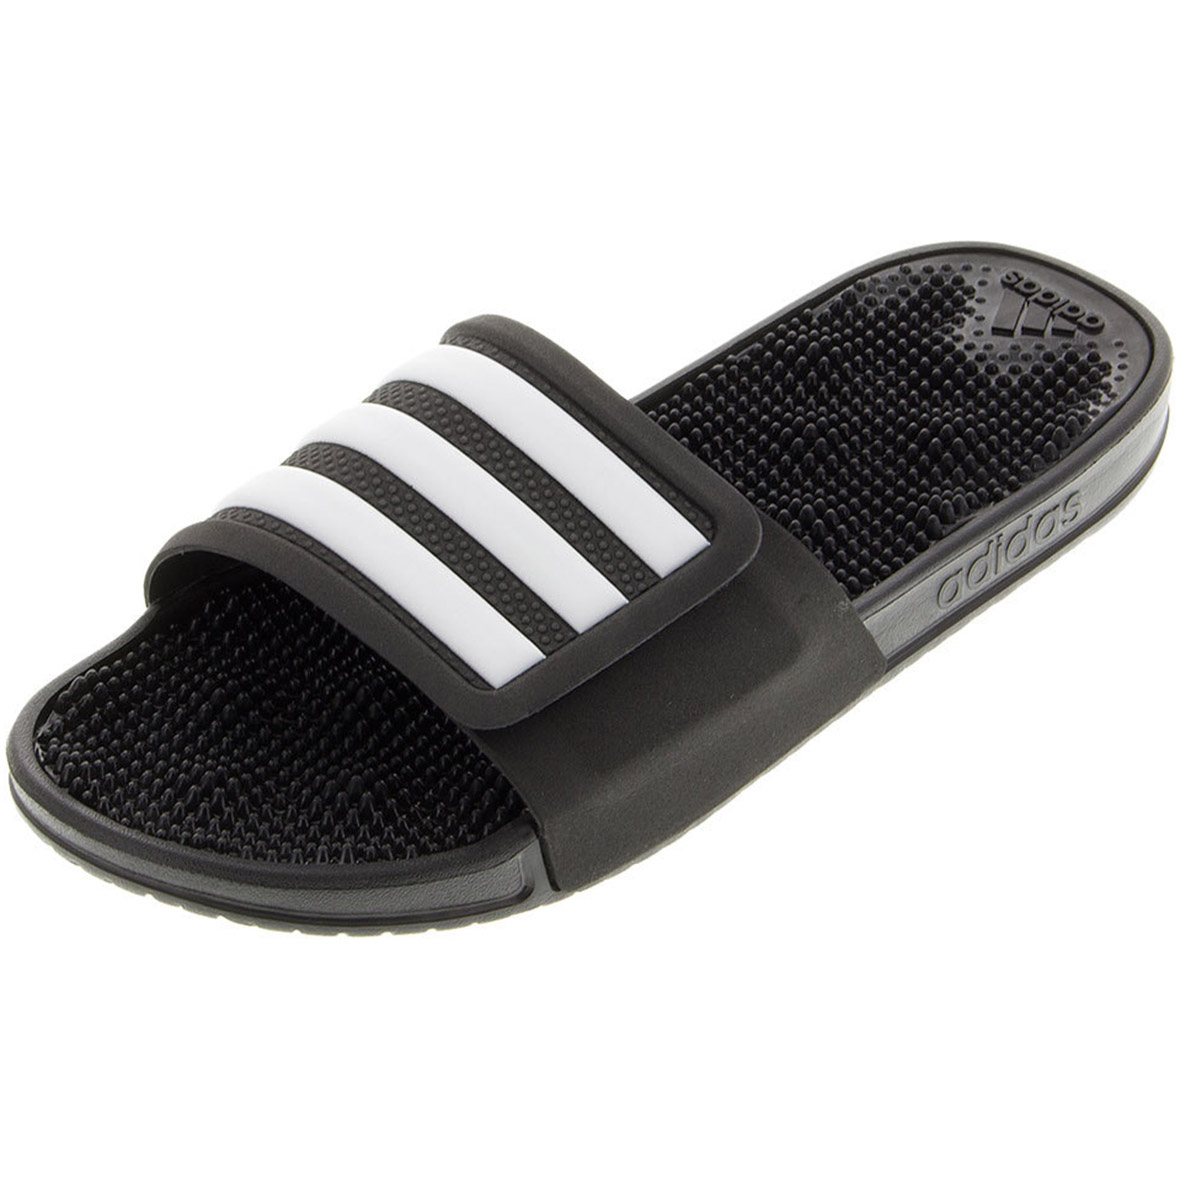 65ee4954a70a35 adidas Men s Adissage 2.0 Slides Sandal - SportingLife Blog